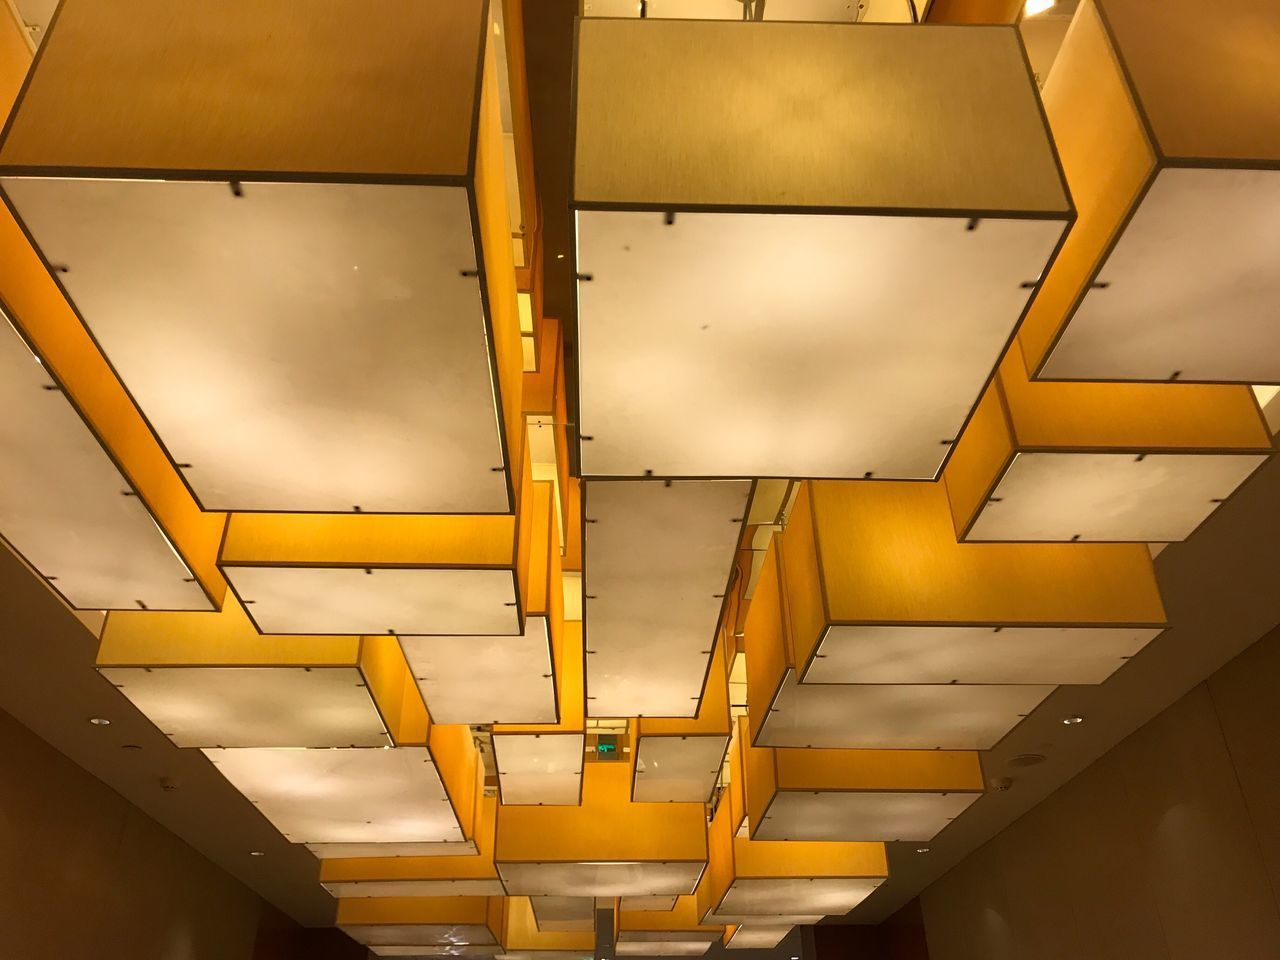 yellow, low angle view, ceiling, architecture, no people, built structure, backgrounds, indoors, modern, illuminated, sky, day